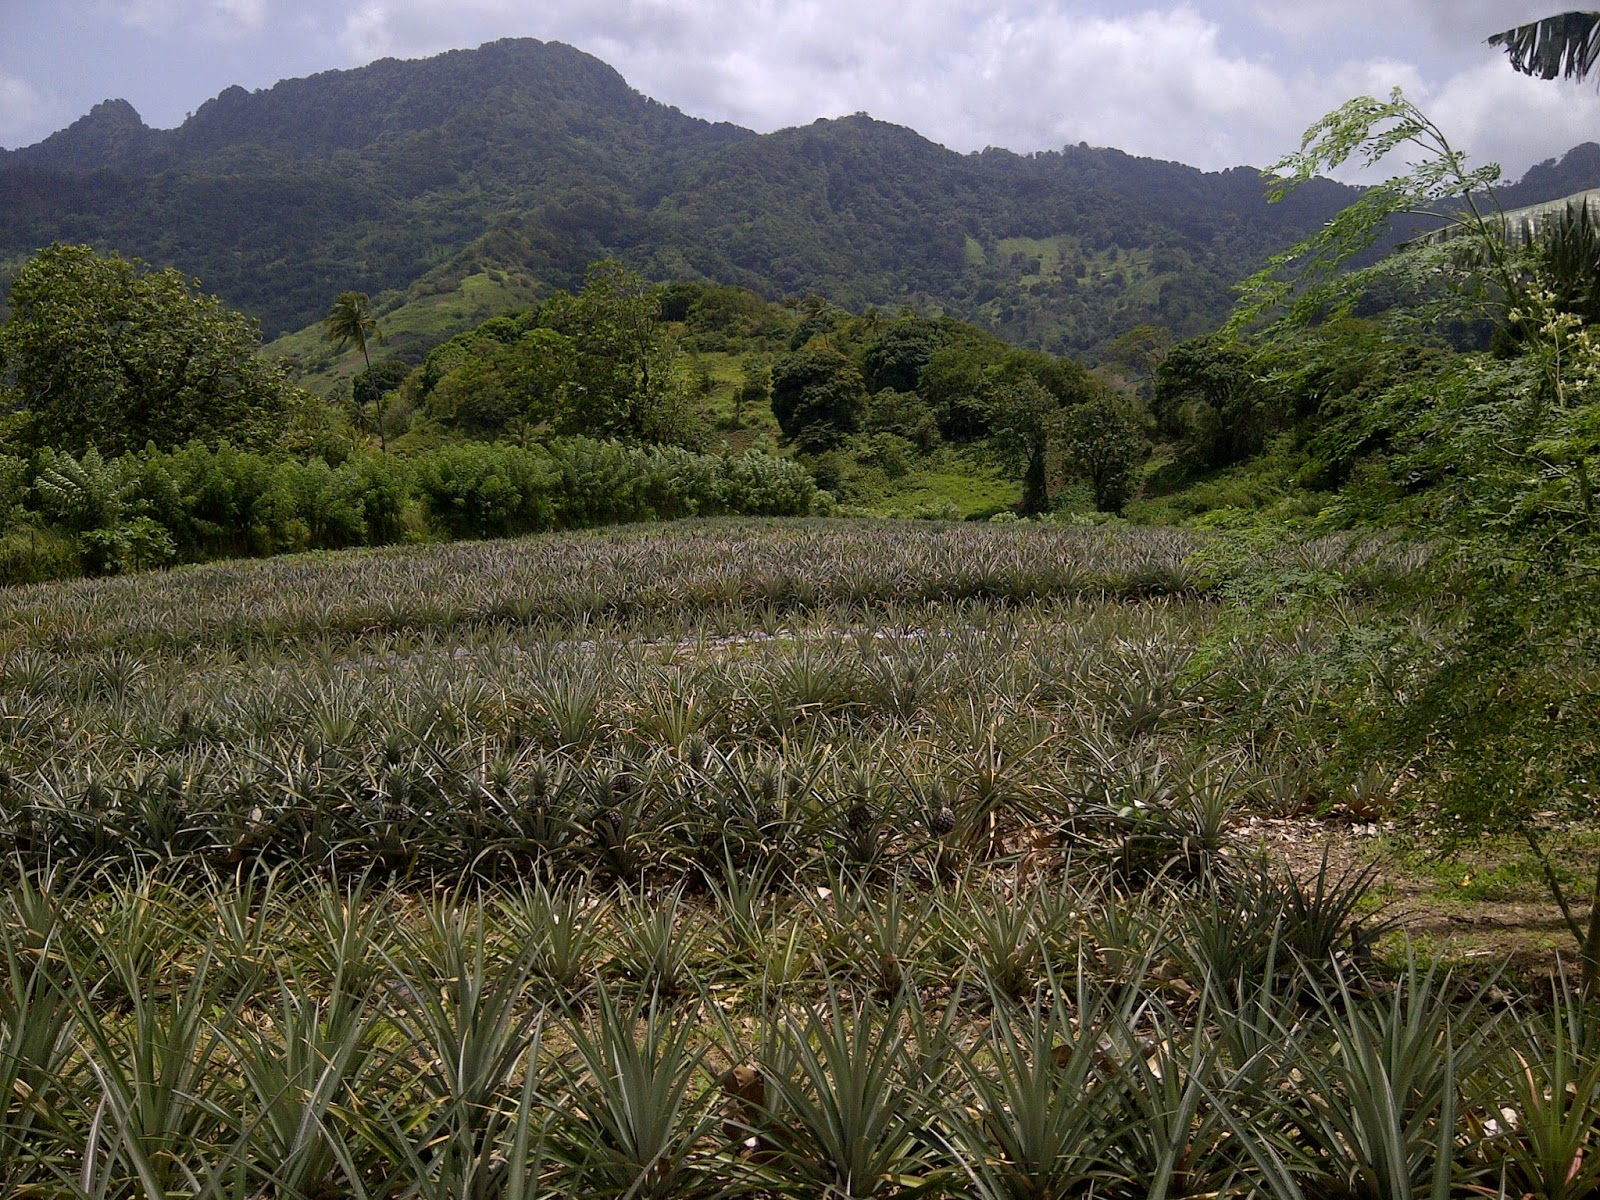 Emerald Valley Pineapples